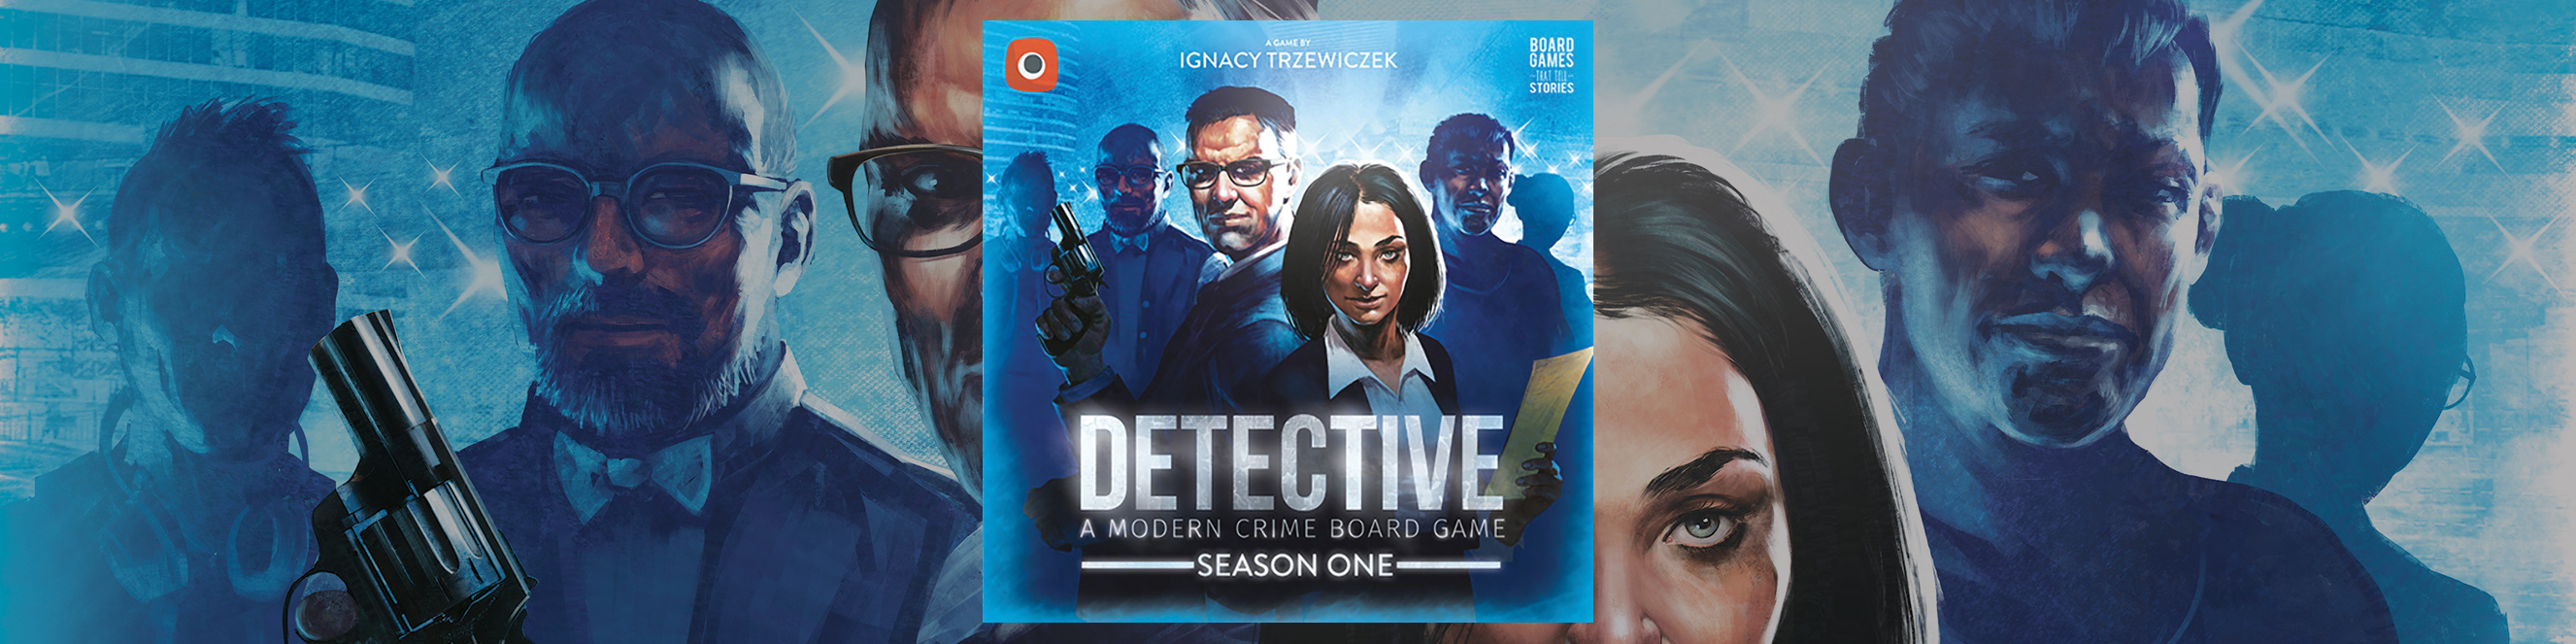 season_one_cover_WIX